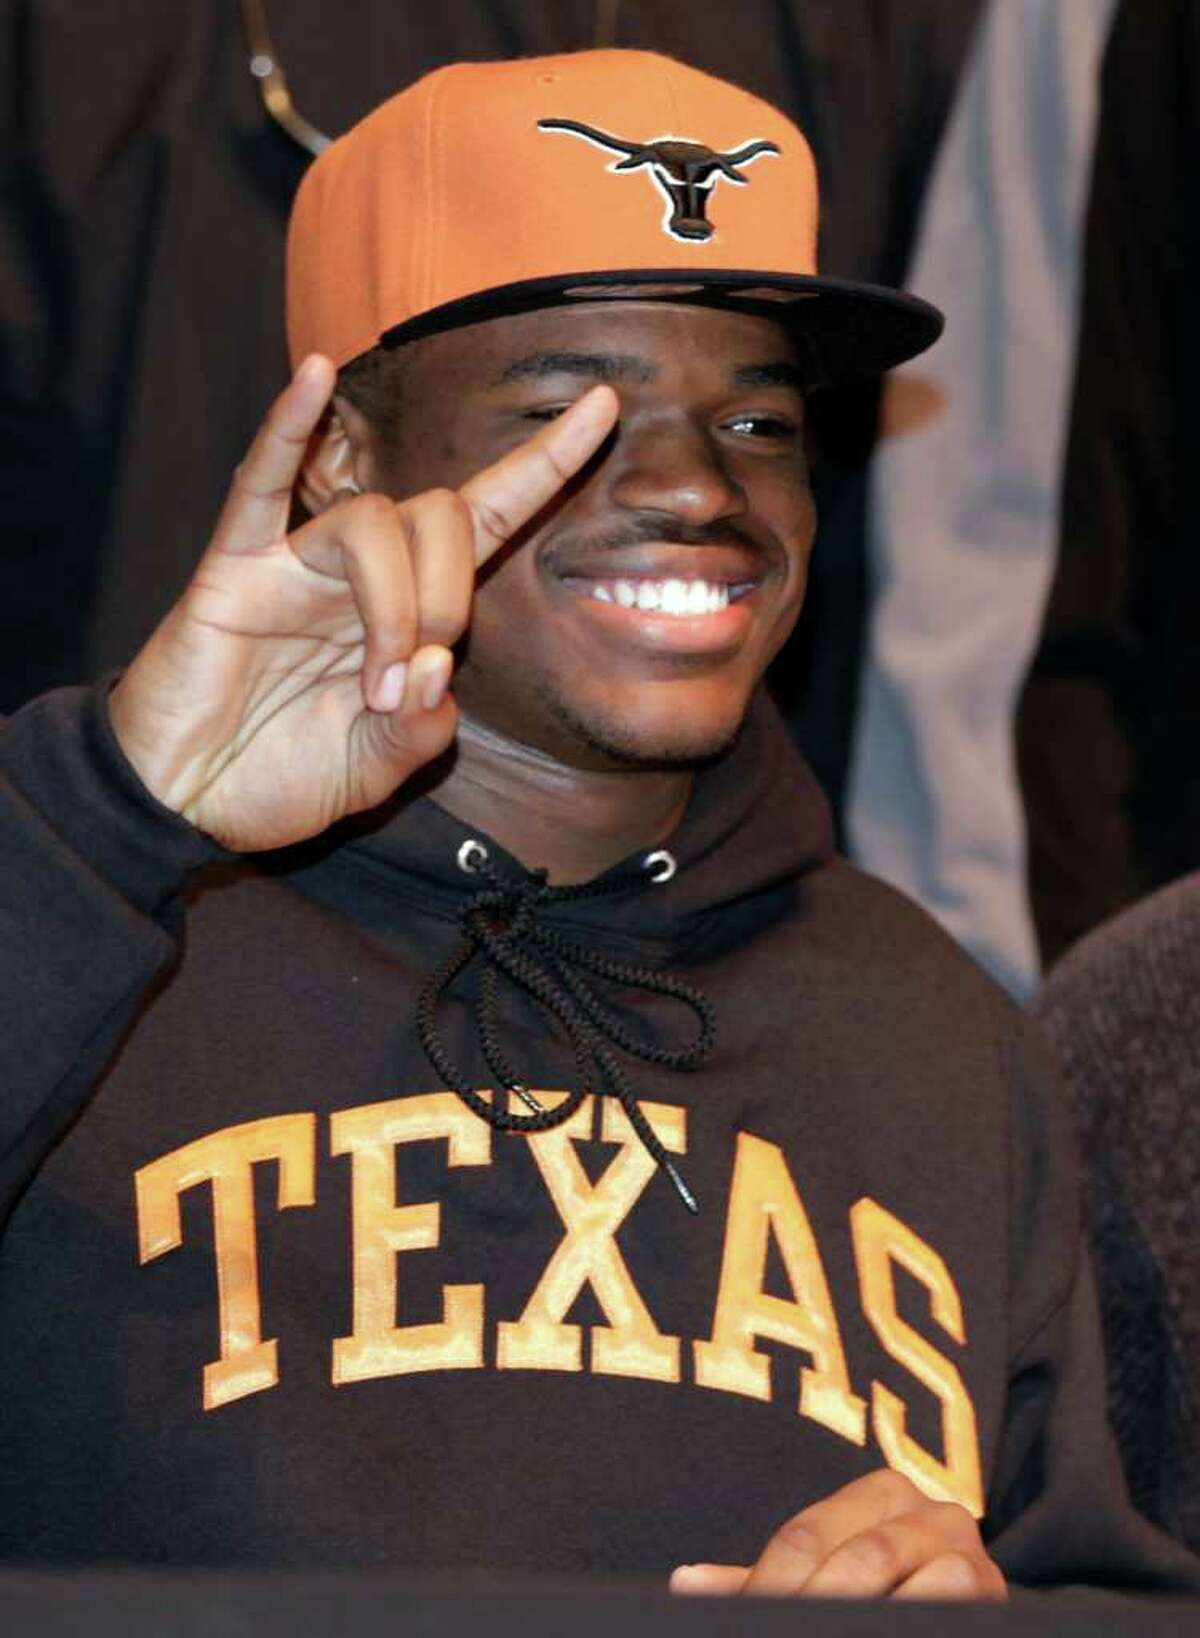 Malcolm Brown from Steele High School, flashes a big smile as he gives the horns sign after signing with The University of Texas to play football, Wednesday, Feb. 2, 2011.